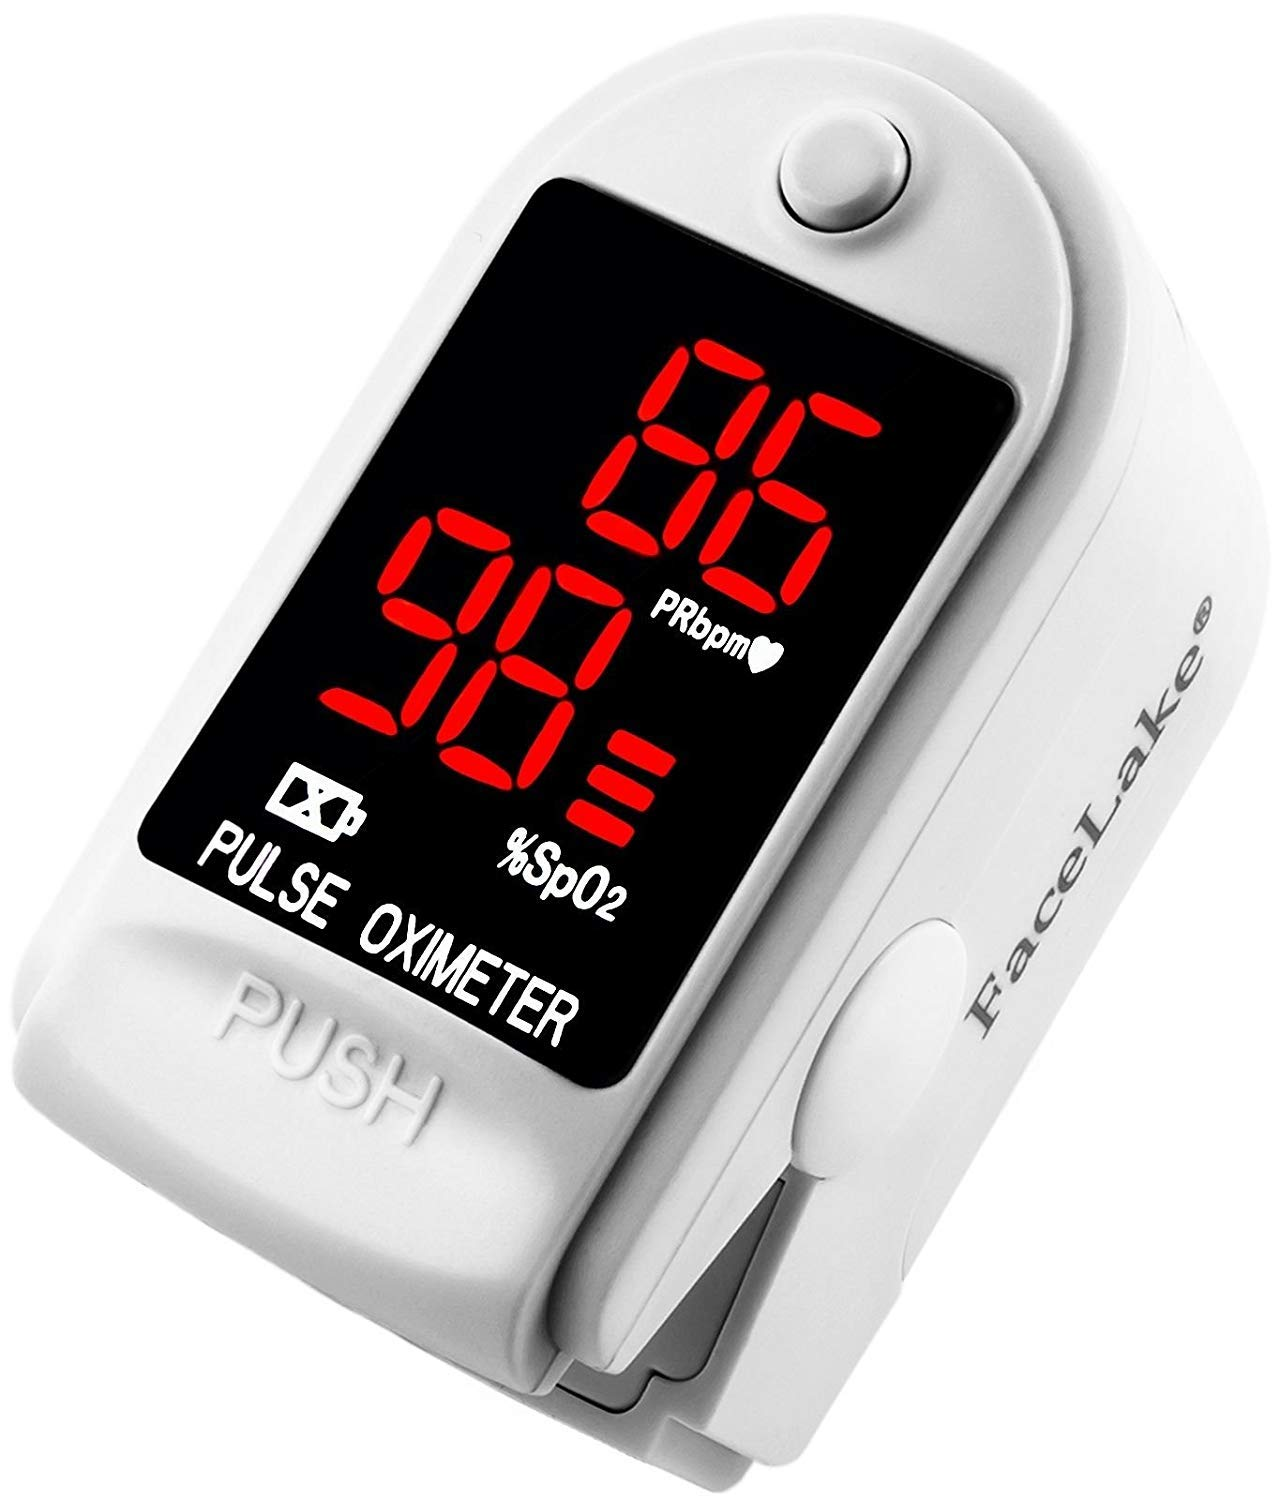 Facelake FL400 Pulse Oximeter with Carrying Case, Batteries, Neck Wrist Cord – White